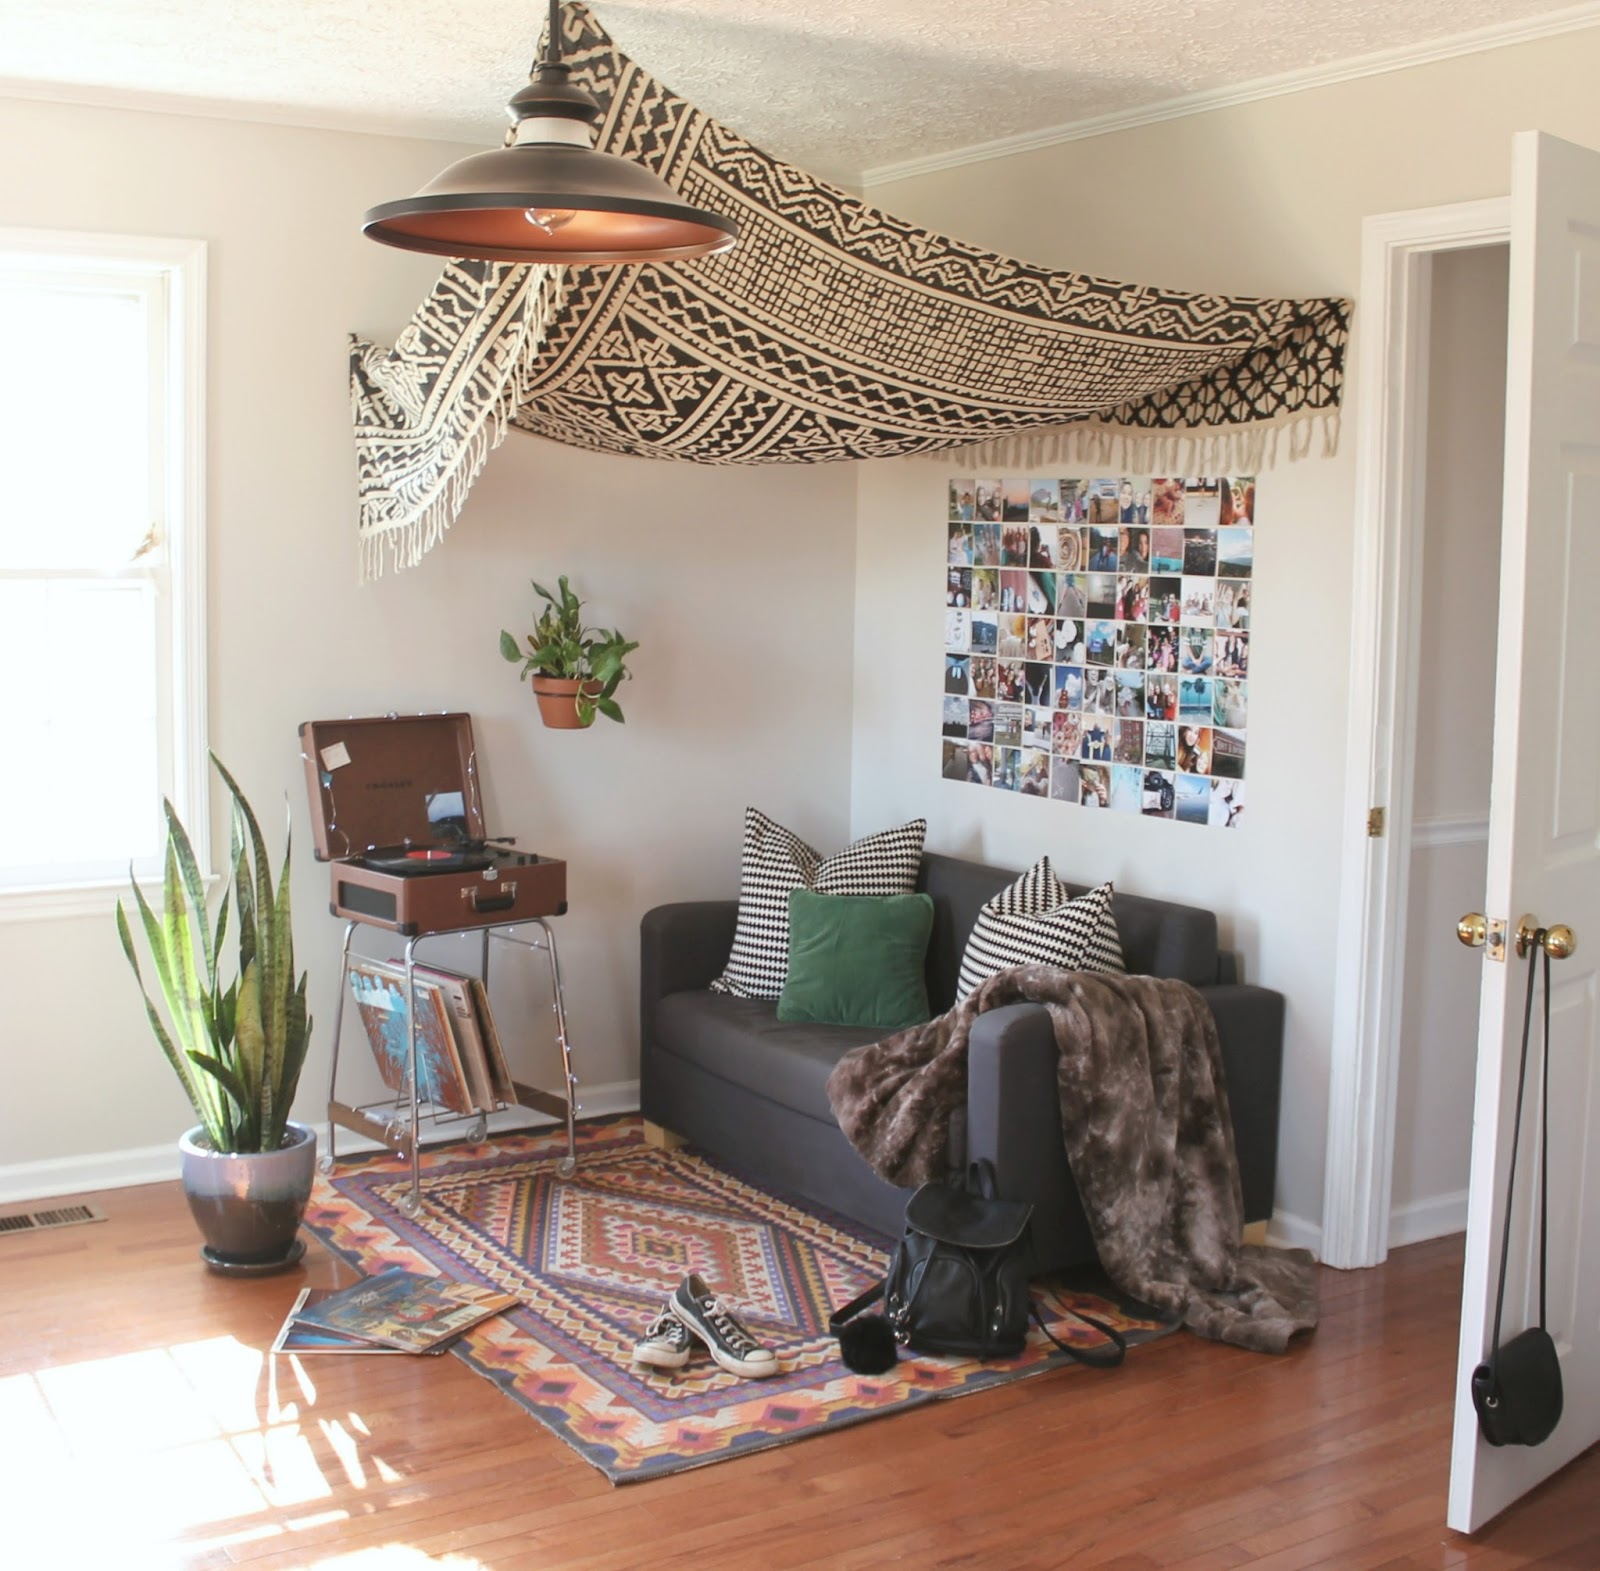 The Little Farm Diary: Teen Girls' Room Reveal {a Boho